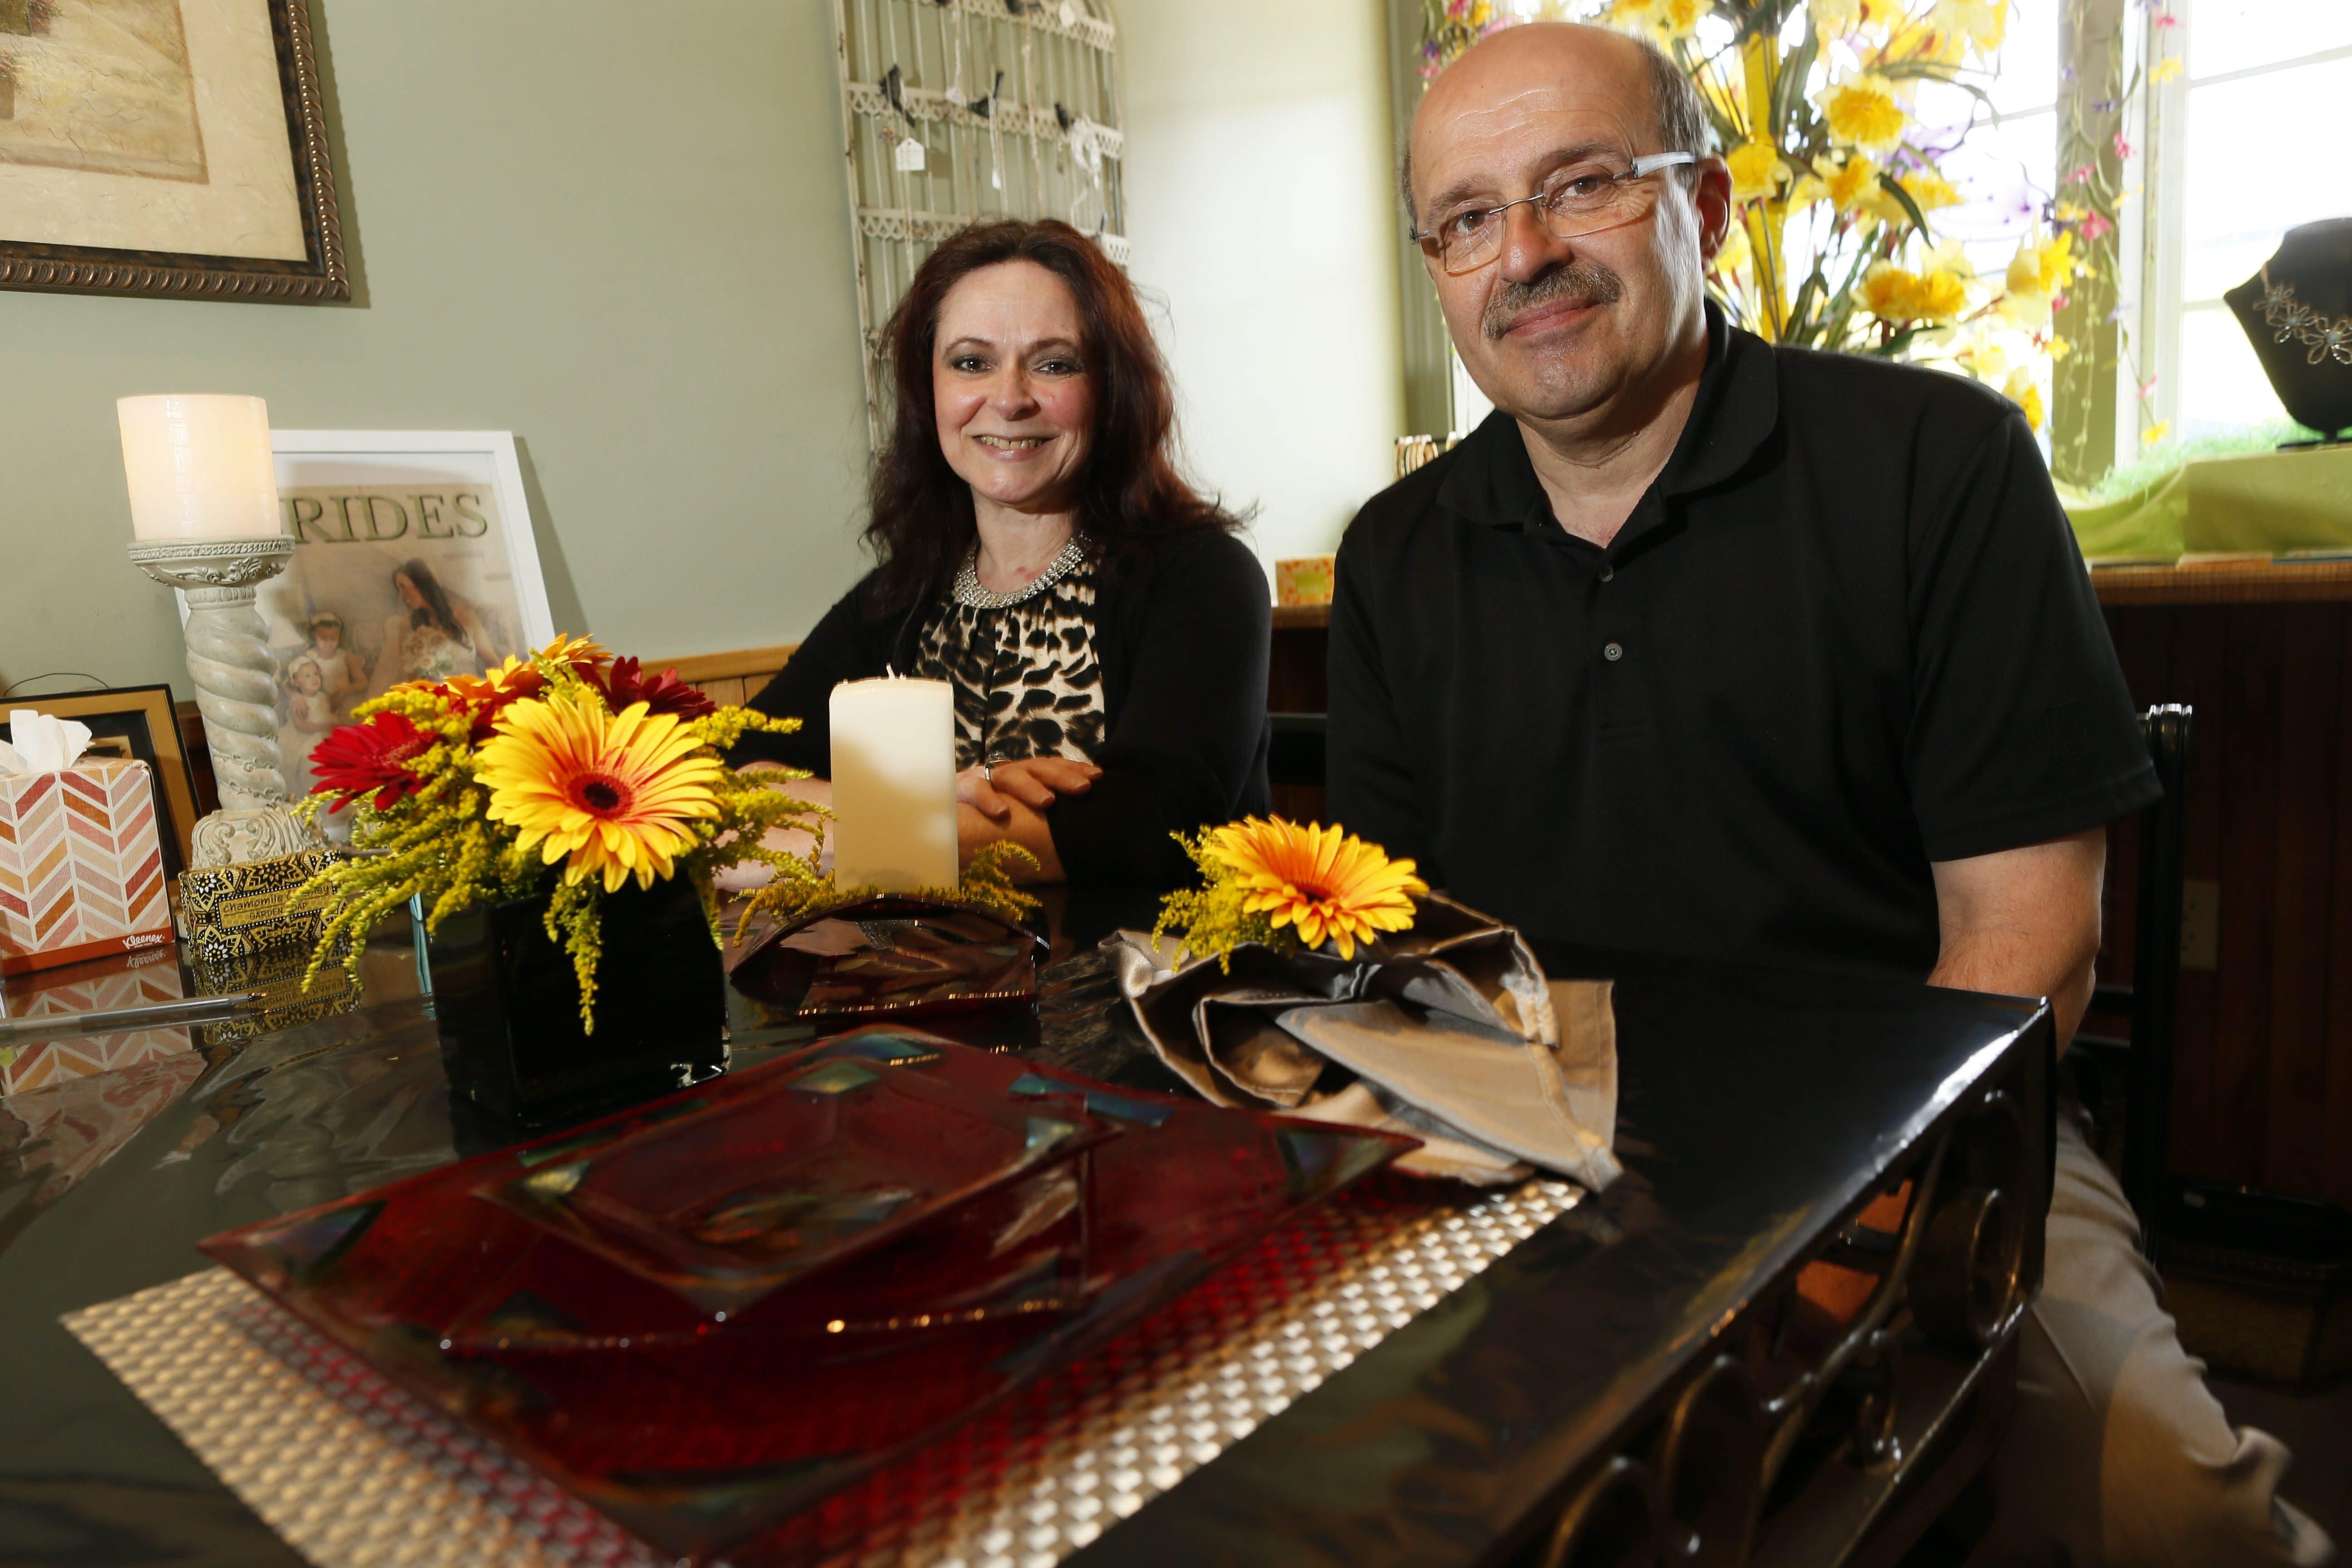 Designers Roz DiBacco, left, and Al Piccirillo will be designing tables capes for the upcoming Lewiston Tour of Kitchens.  They pose for photos at Piccirillo's Florist in Niagara Falls, Tuesday, May 26, 2015.  (Derek Gee/Buffalo News)